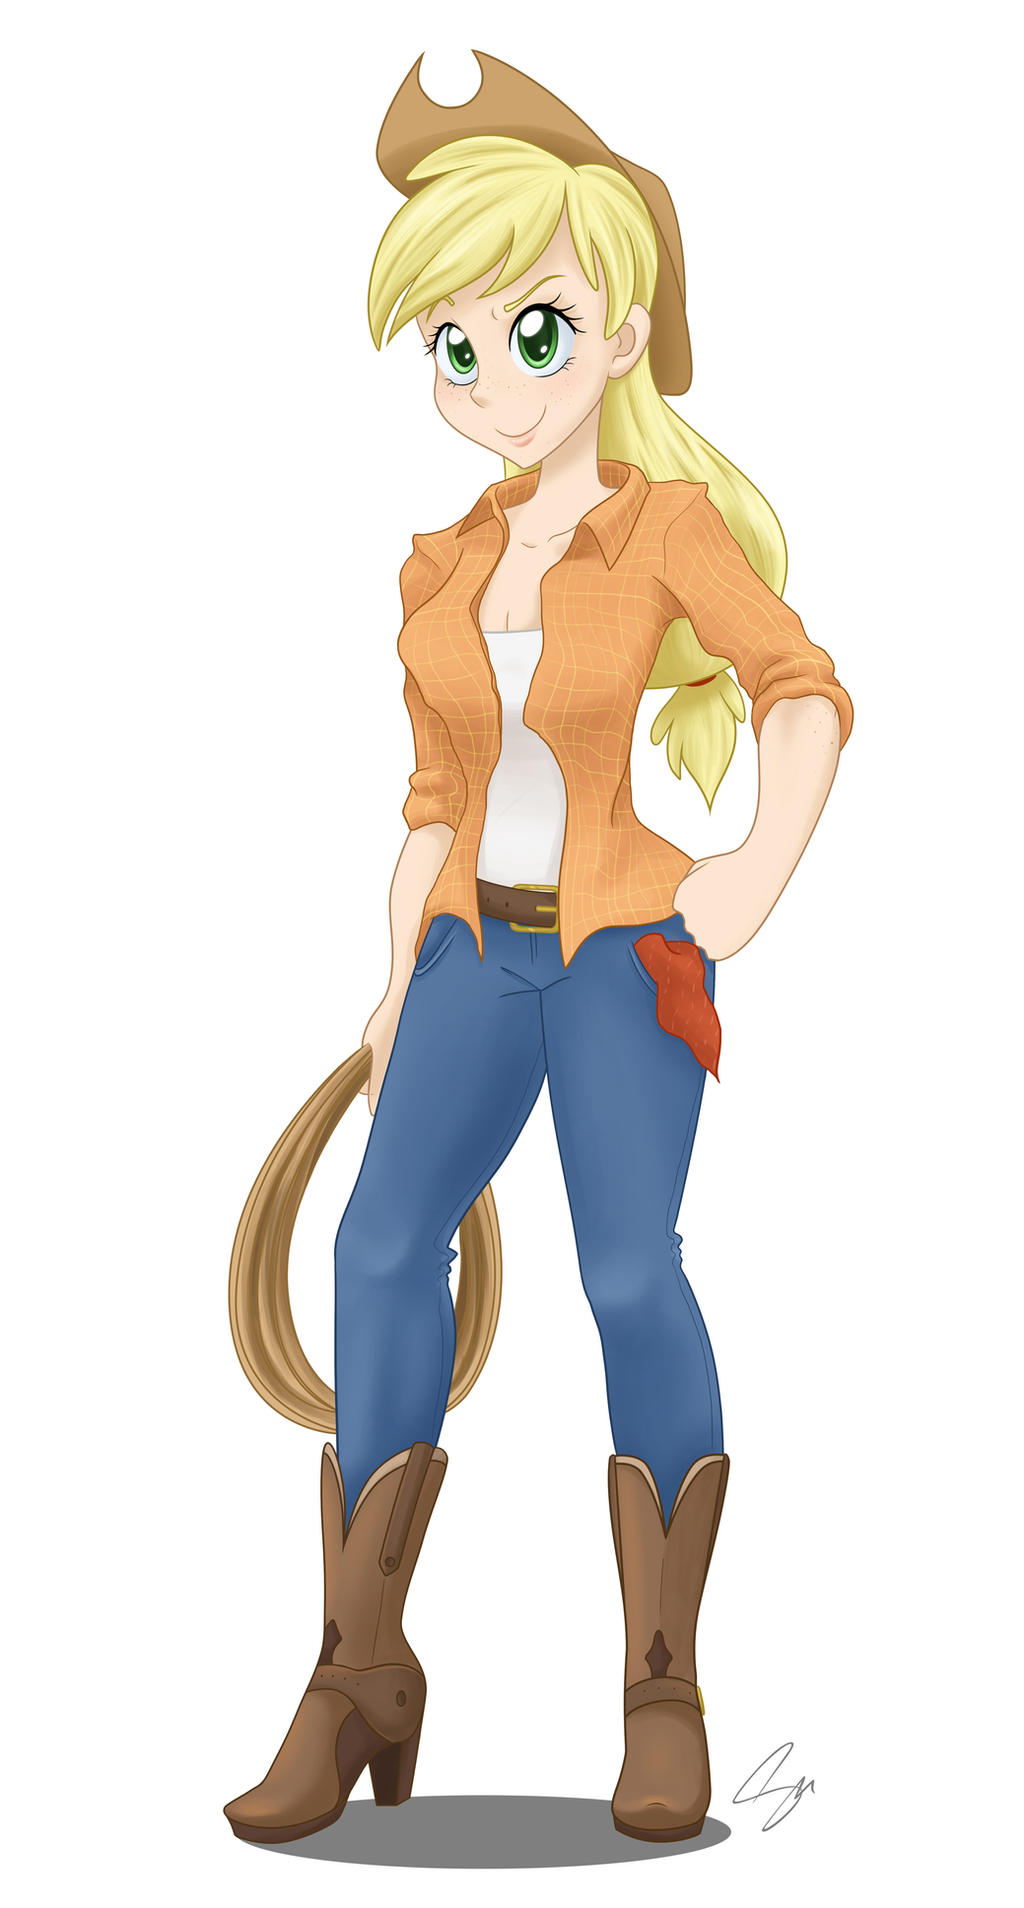 Human Applejack by steffy-beff